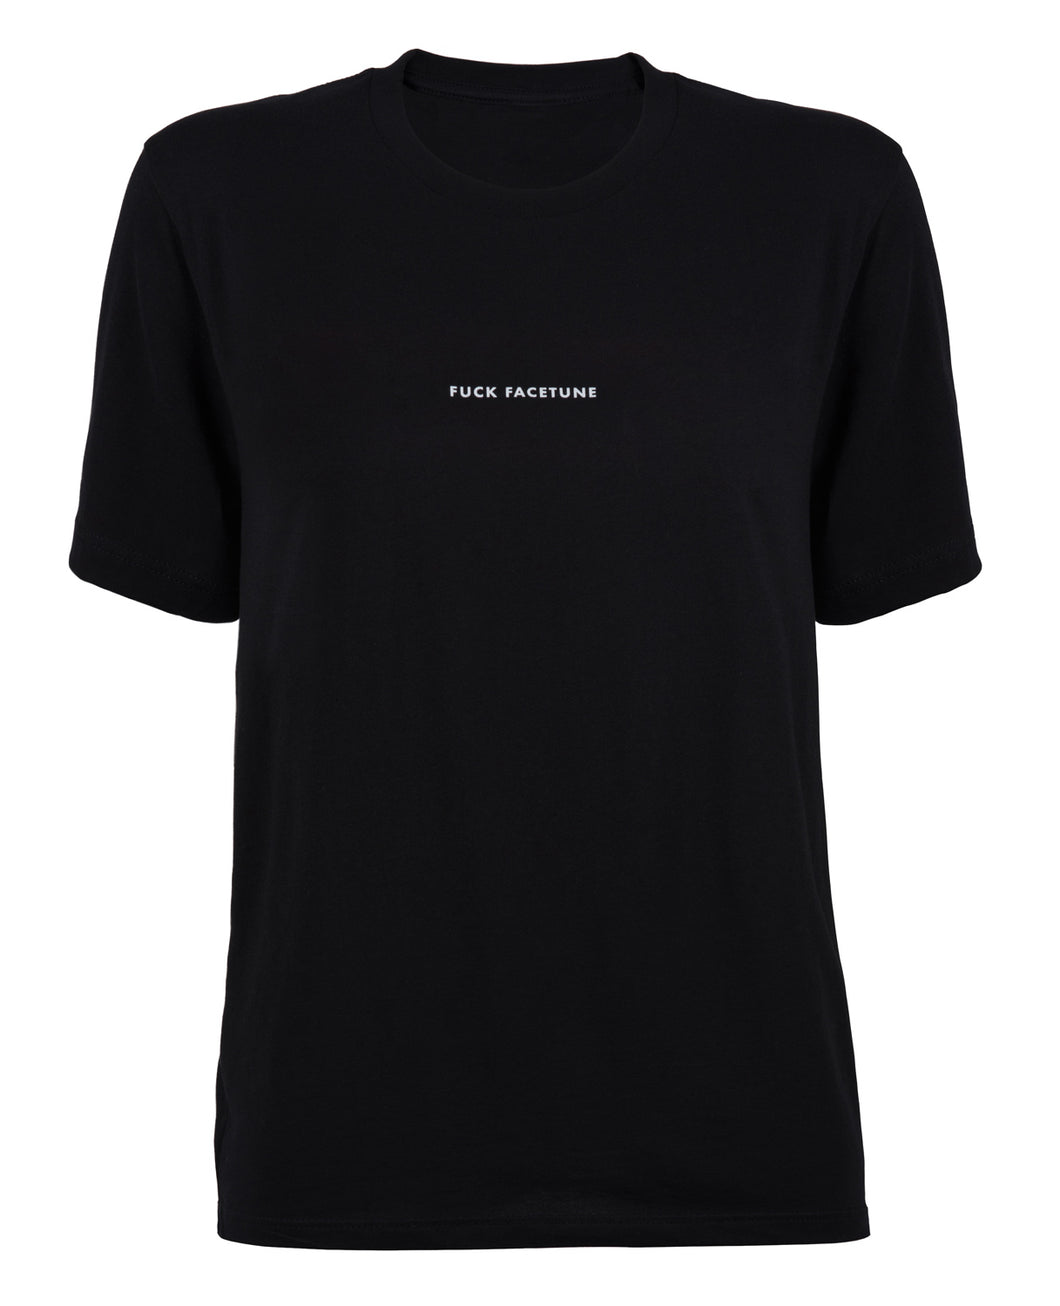 Fuck Facetune Tee - Black